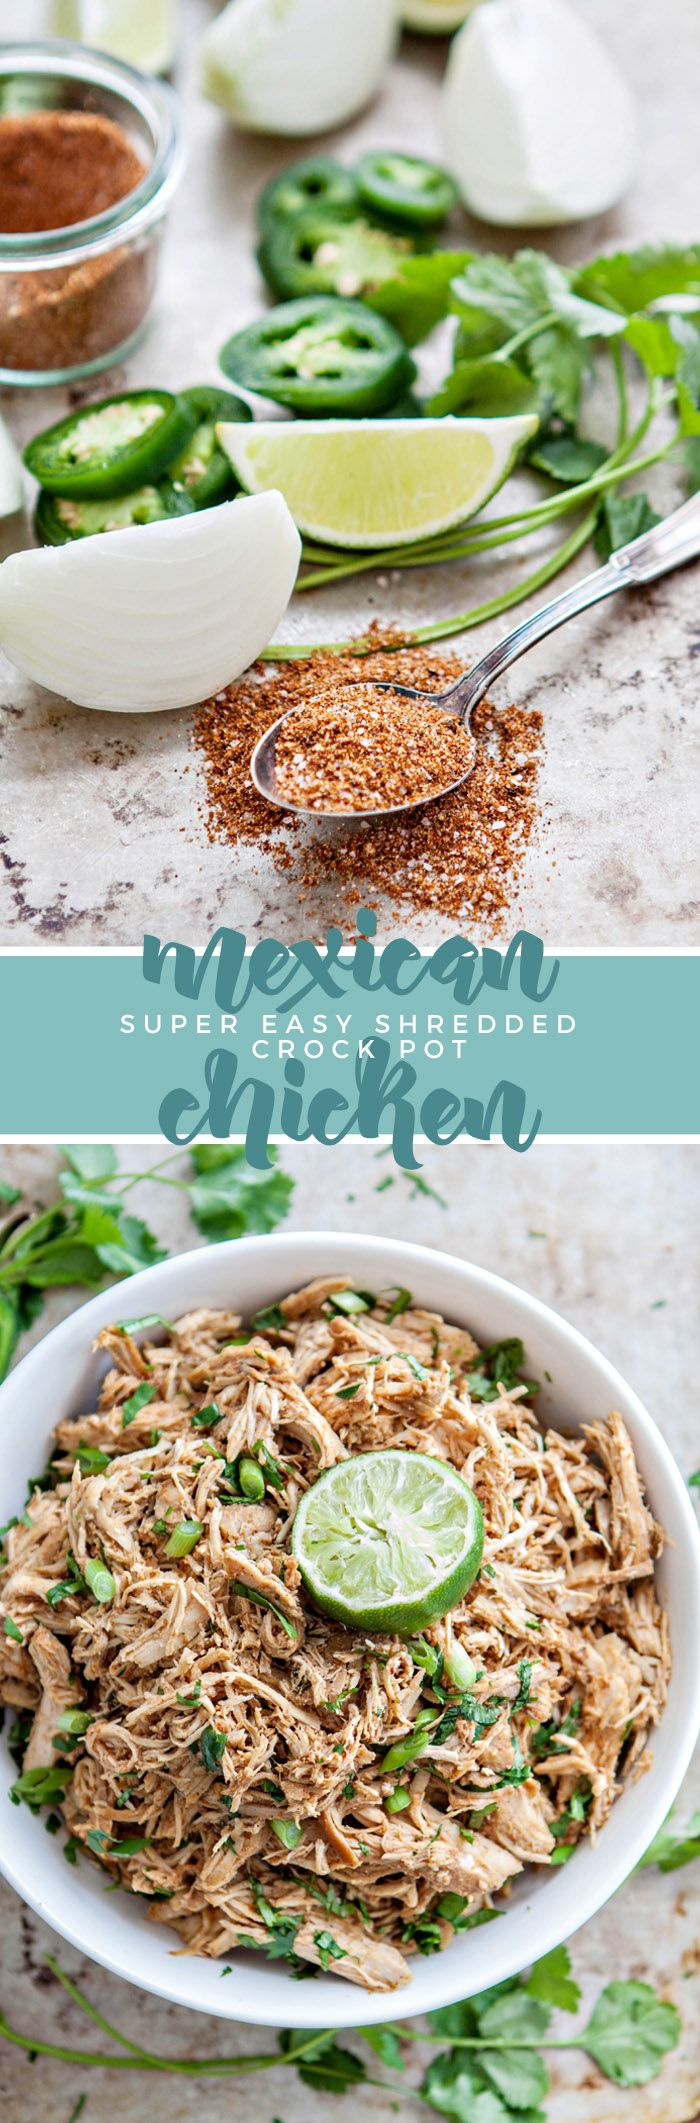 Crock Pot Mexican Chicken is the perfect shredded chicken recipe for your next Mexican recipe. Packed with flavor and super tender thanks to hours in the crock pot, this recipe is sure to please!